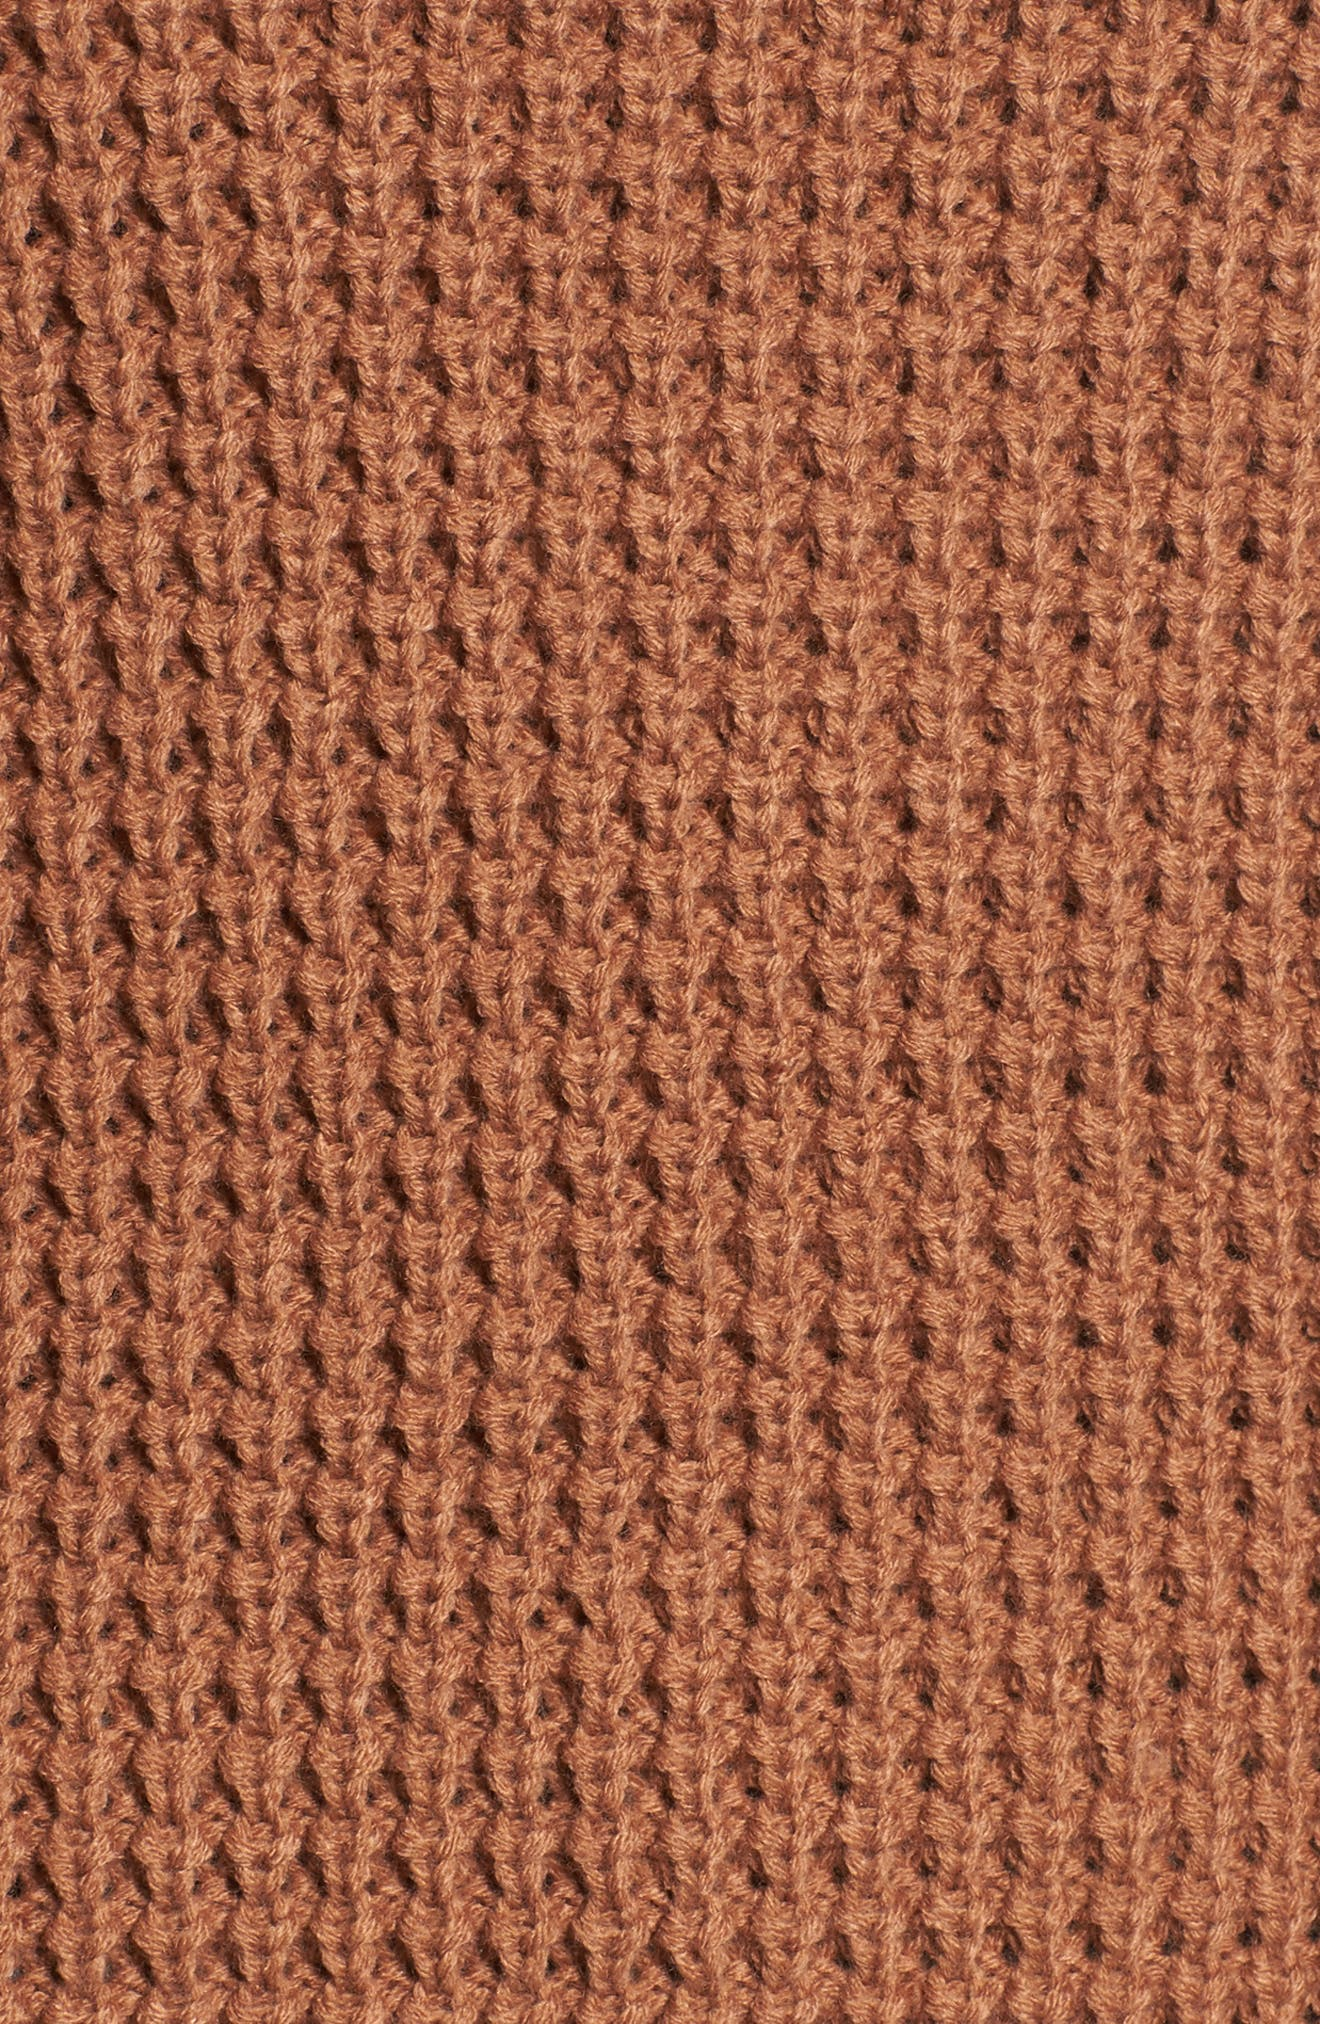 Cowl Neck Thermal Stitch Sweater,                             Alternate thumbnail 5, color,                             Oatmeal